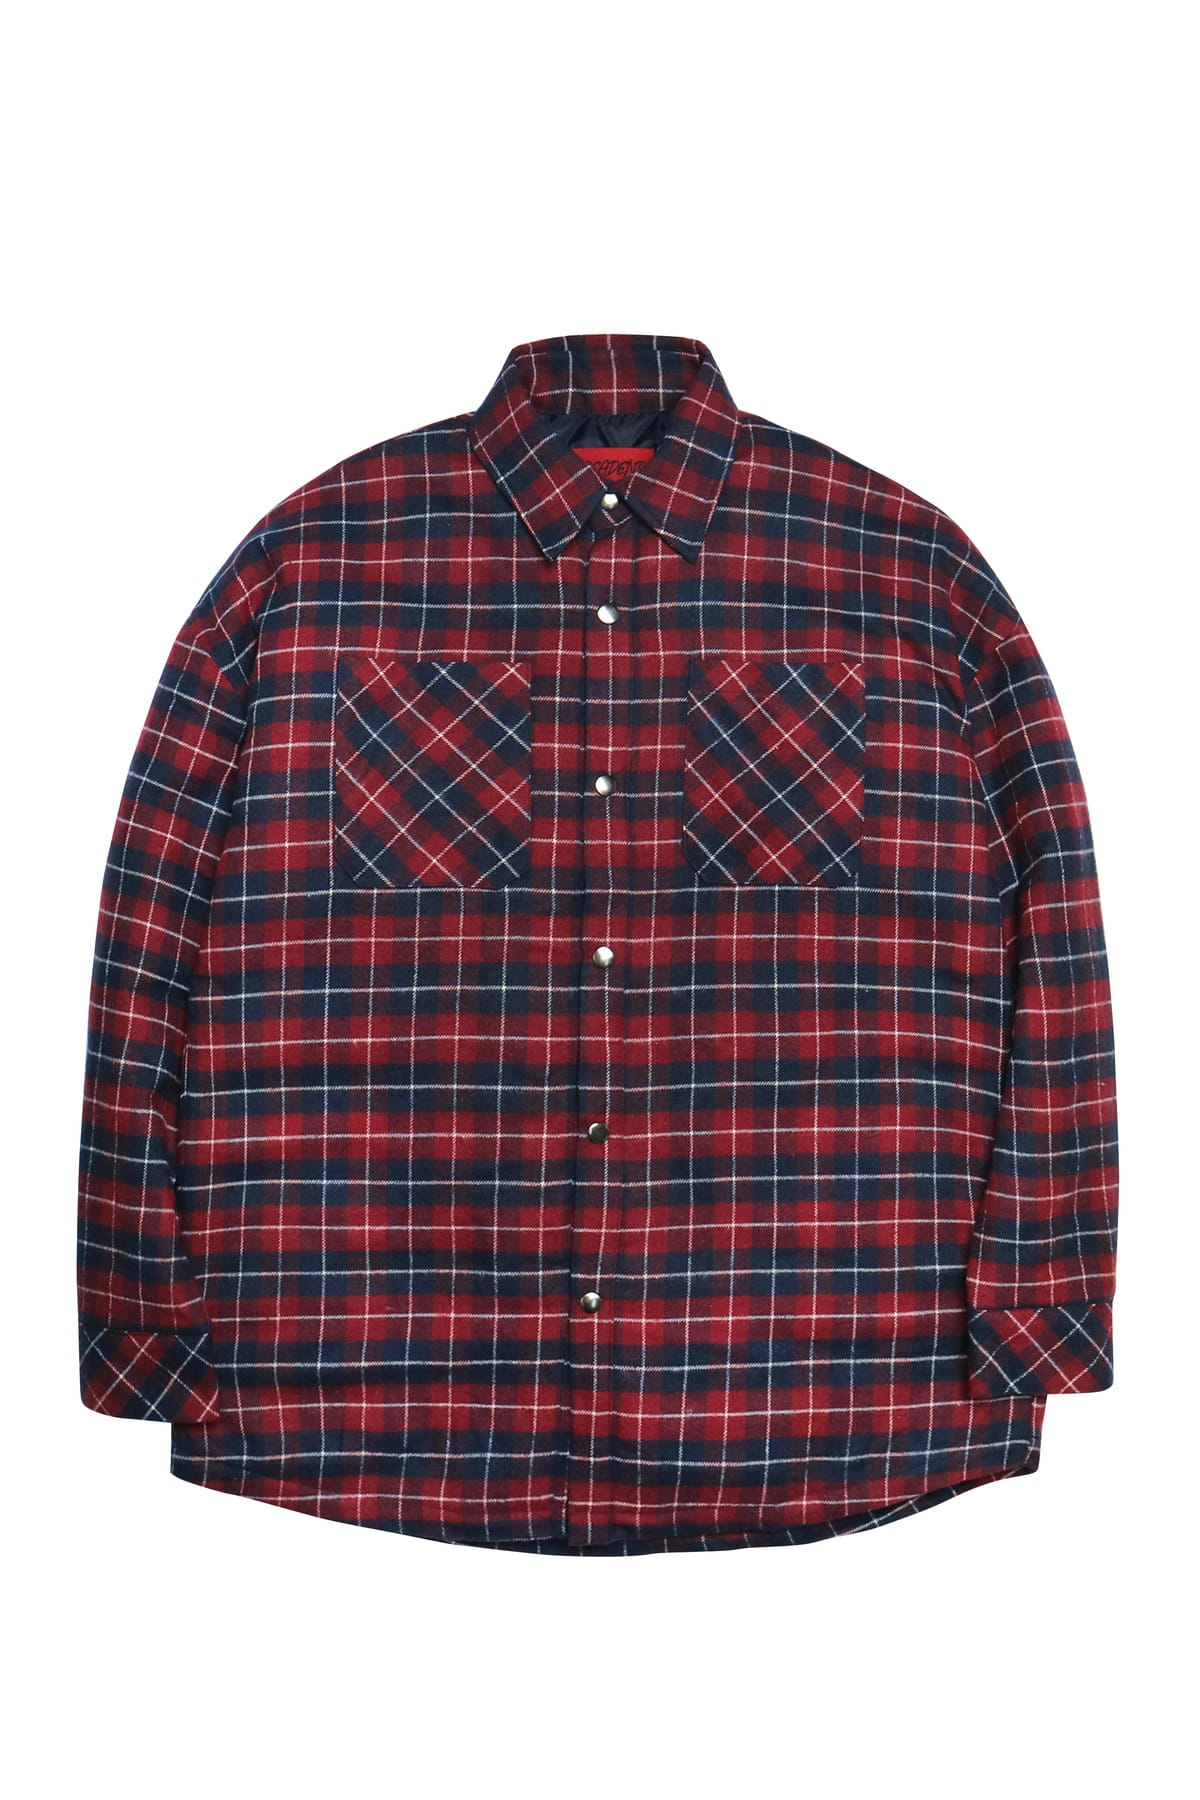 RED OVERSIZE PADDING SHIRTS